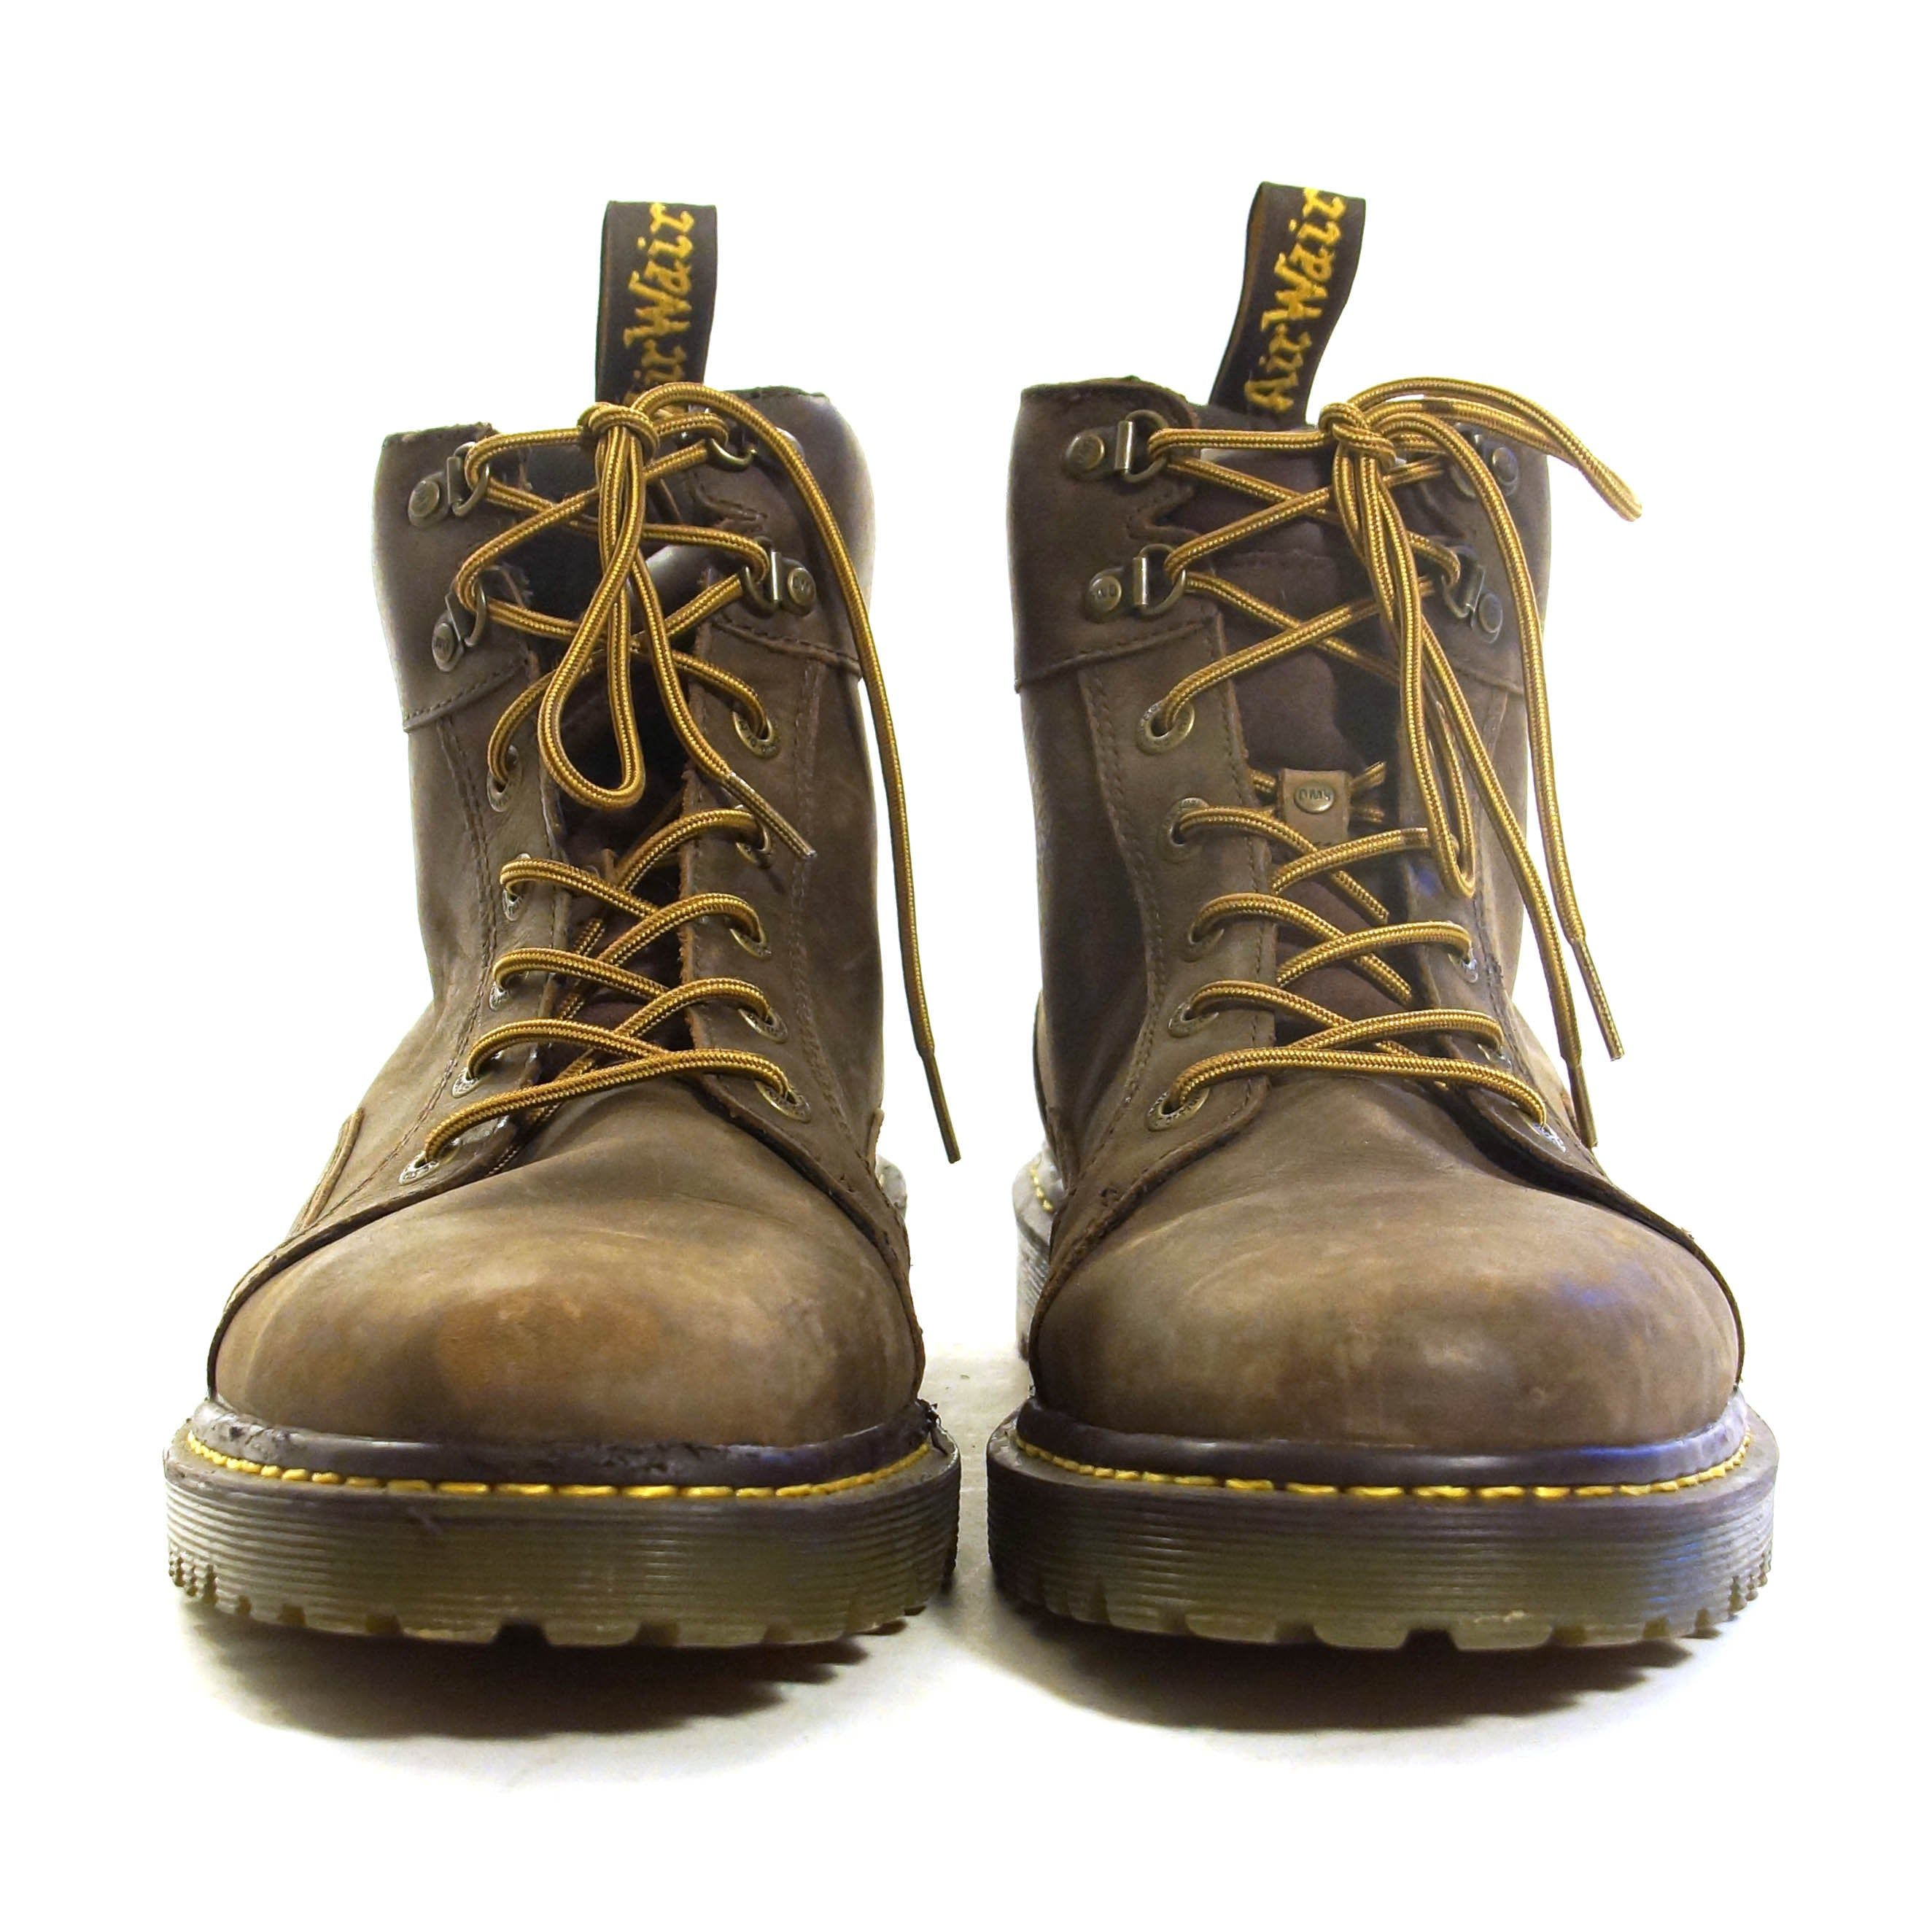 Leather Boots, Shoes & Accessories | Dr Martens UK